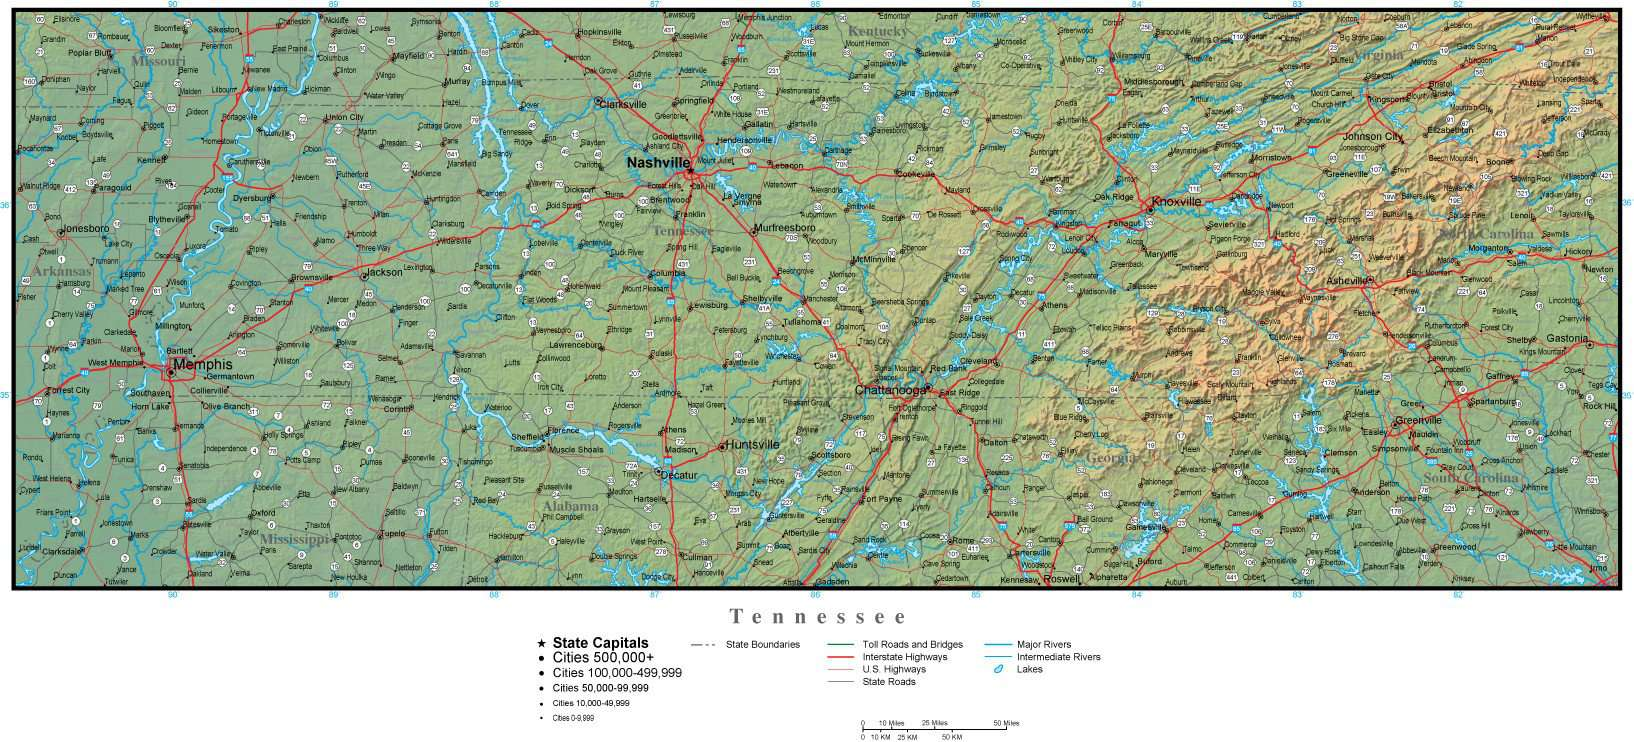 Tennessee Map Plus Terrain with Cities Roads and Water Features on map of france with cities, map rivers in alabama, map of cities vermont, map of cities near dallas, map of ashville alabama, large map of alabama, map of jefferson county, alabama, detailed map of alabama, map of beaches of alabama, map of helena alabama, map of cities puerto rico, map of pennsylvania with cities, map of decatur, alabama, alabama city alabama, map of cities around atlanta, map showing alabama counties, map of cities around phoenix, map counties in alabama, map of cities of virginia, map of cities new york,